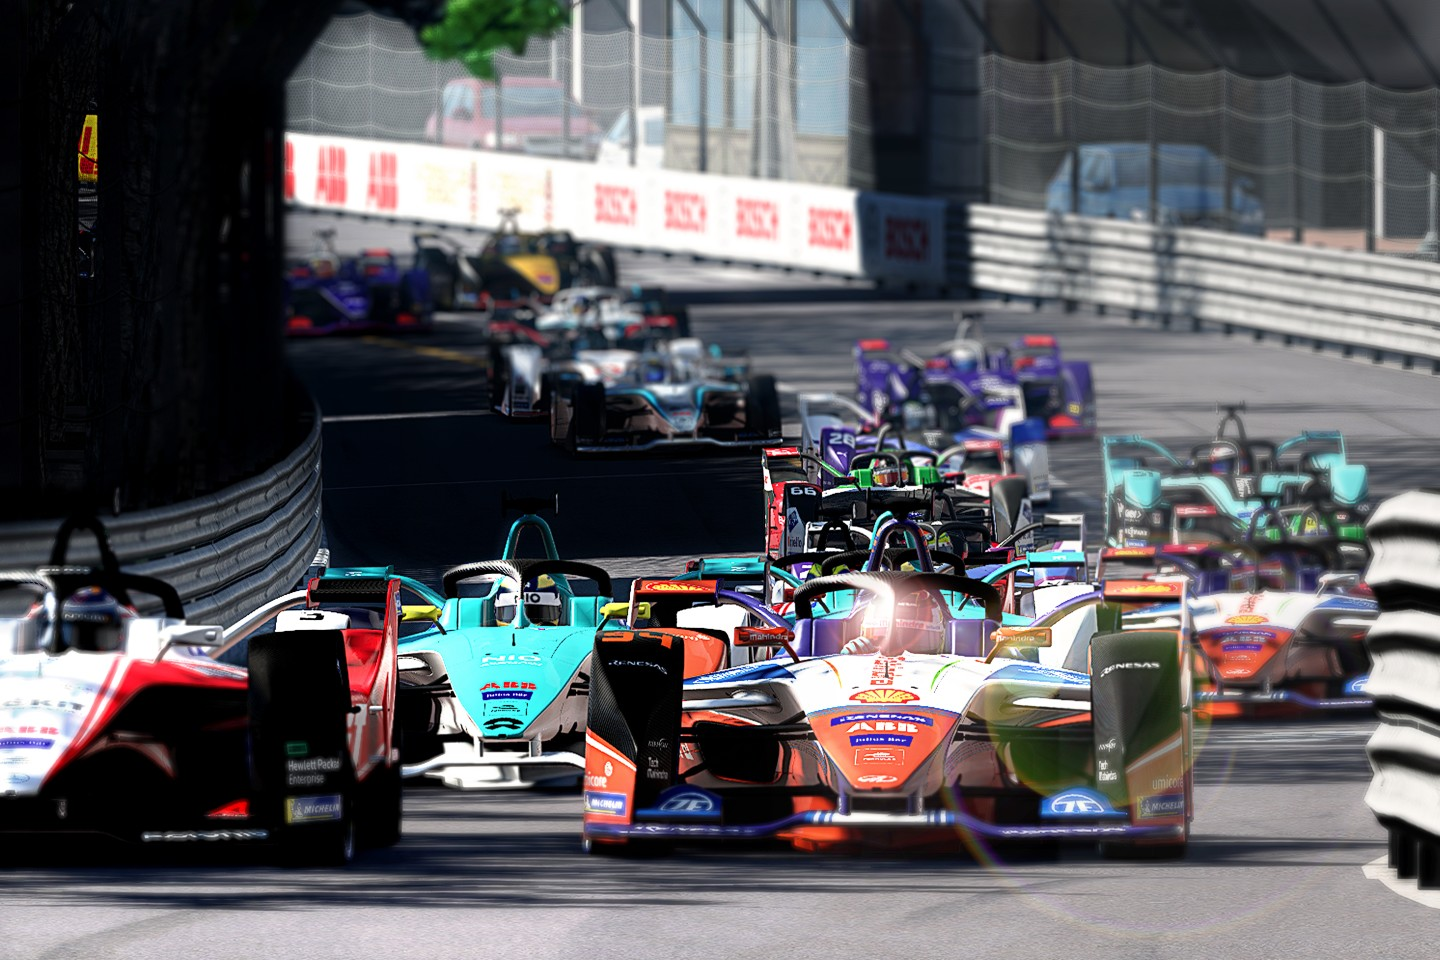 Formula E is joining forces with UNICEF. The 'Formula E Race at Home Challenge' will raise funds for the global fight against the coronavirus. This Saturday, April 18, 2020 gets things going with a test round, which will give the drivers and organizer time to adjust to the new format. The Monaco track will be used for Saturday's test